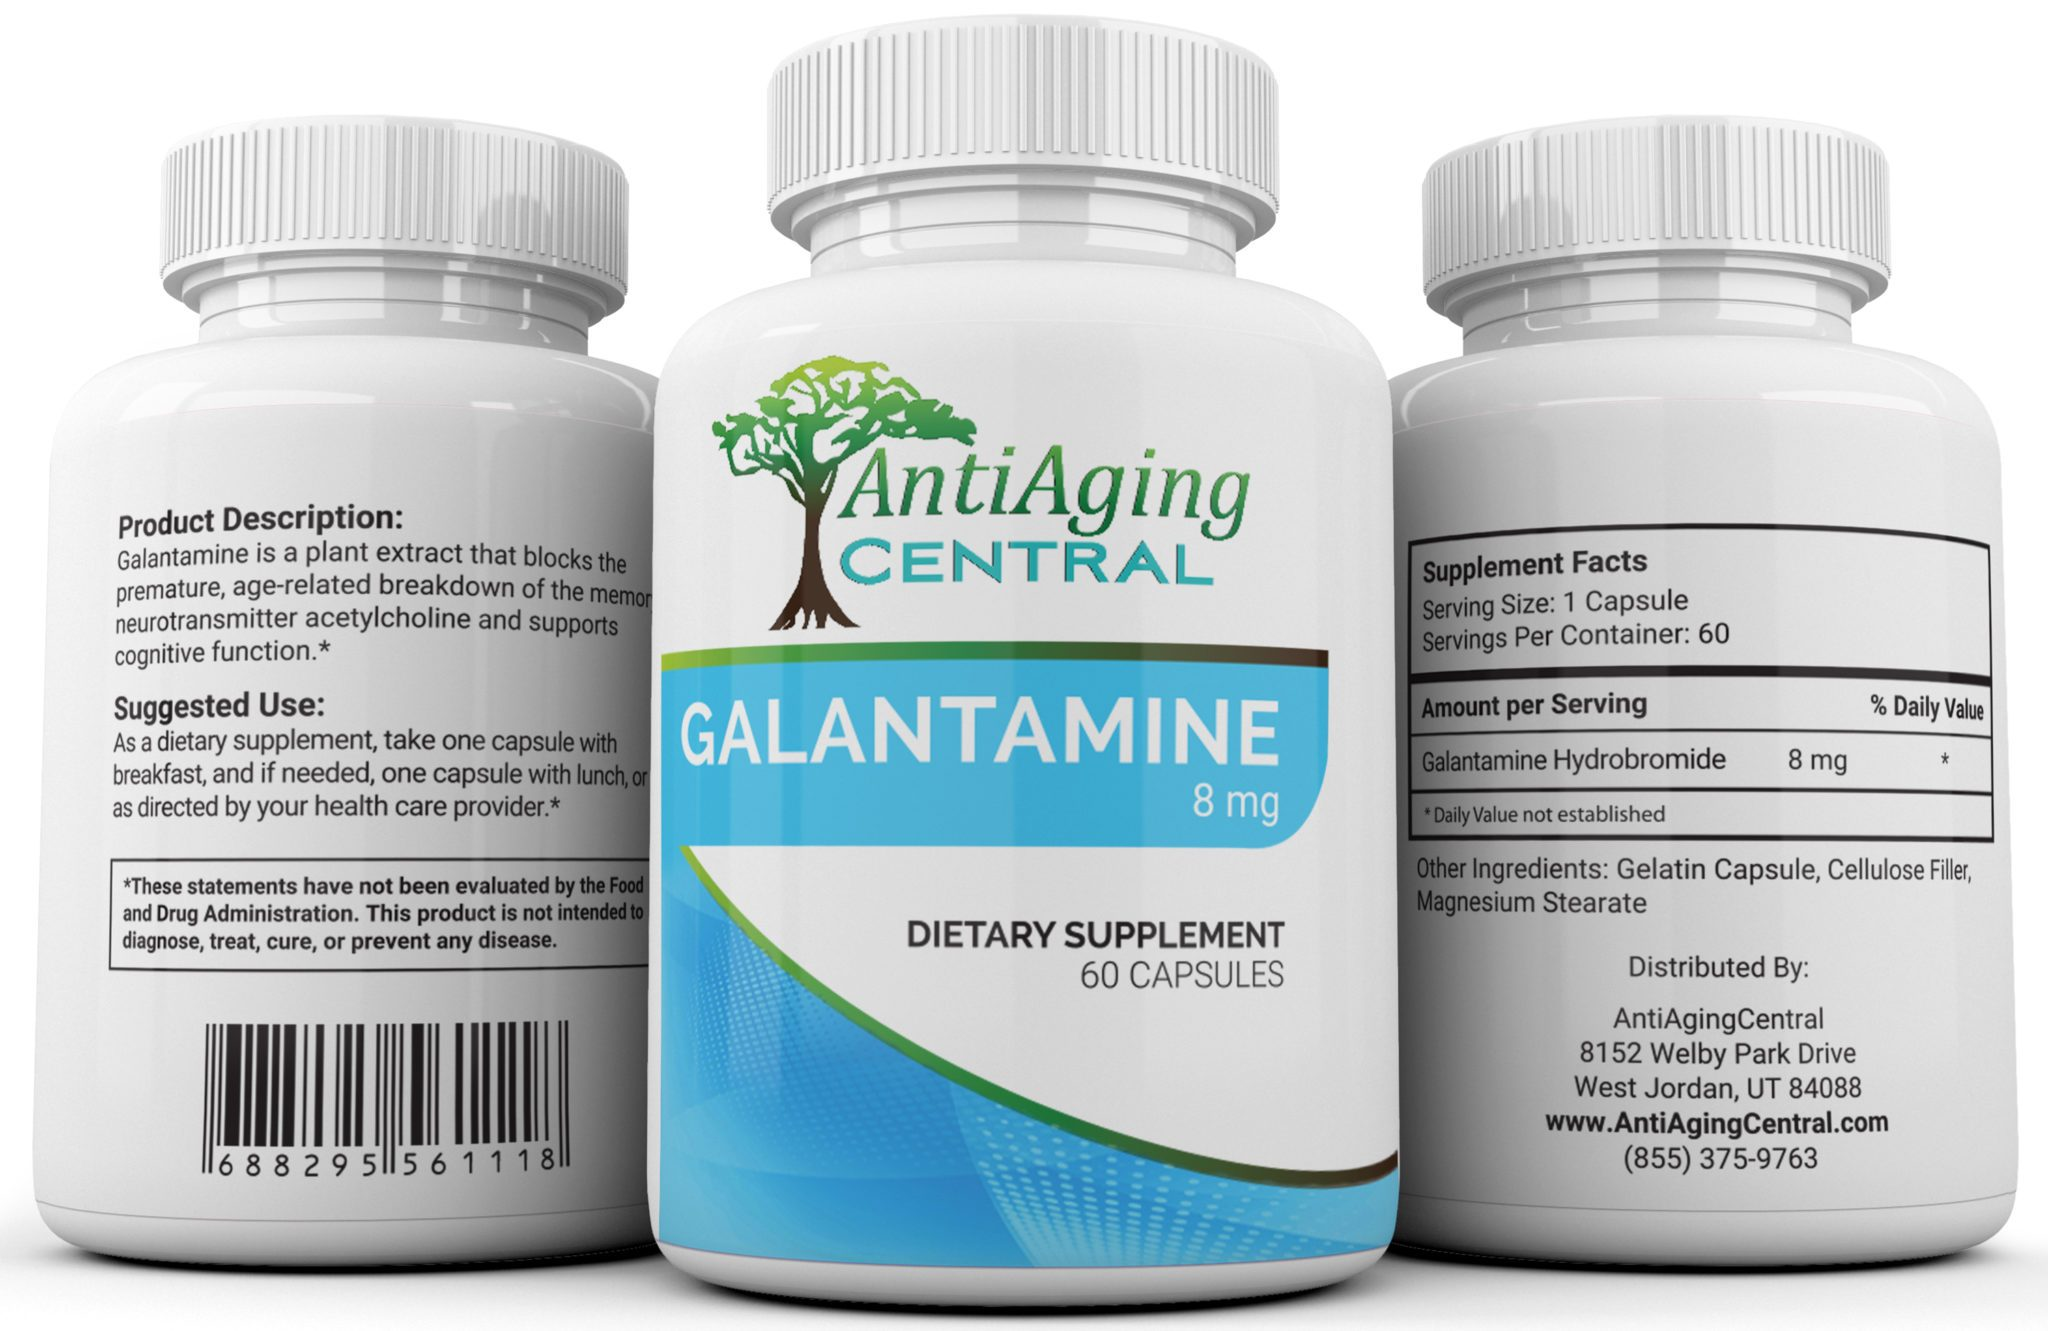 Galantamine, Antiaging central